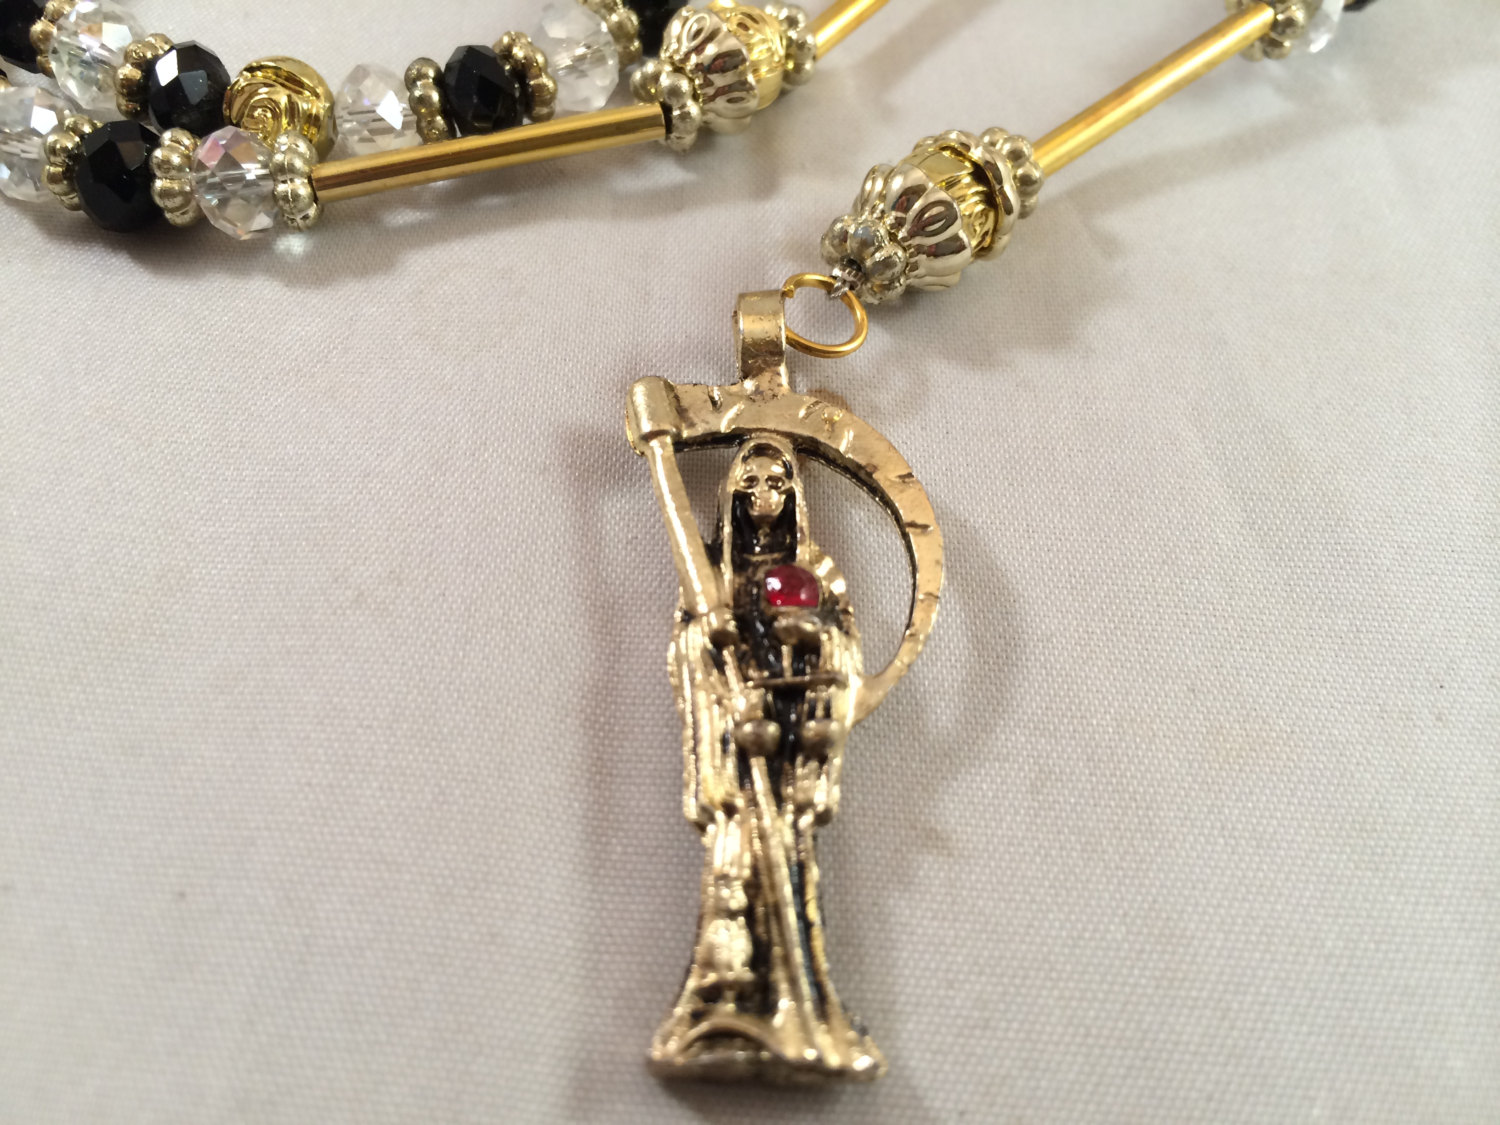 Santa muerte rosary necklace gold black clear beads rosario ilfullxfull639027392ti1esmall mozeypictures Gallery